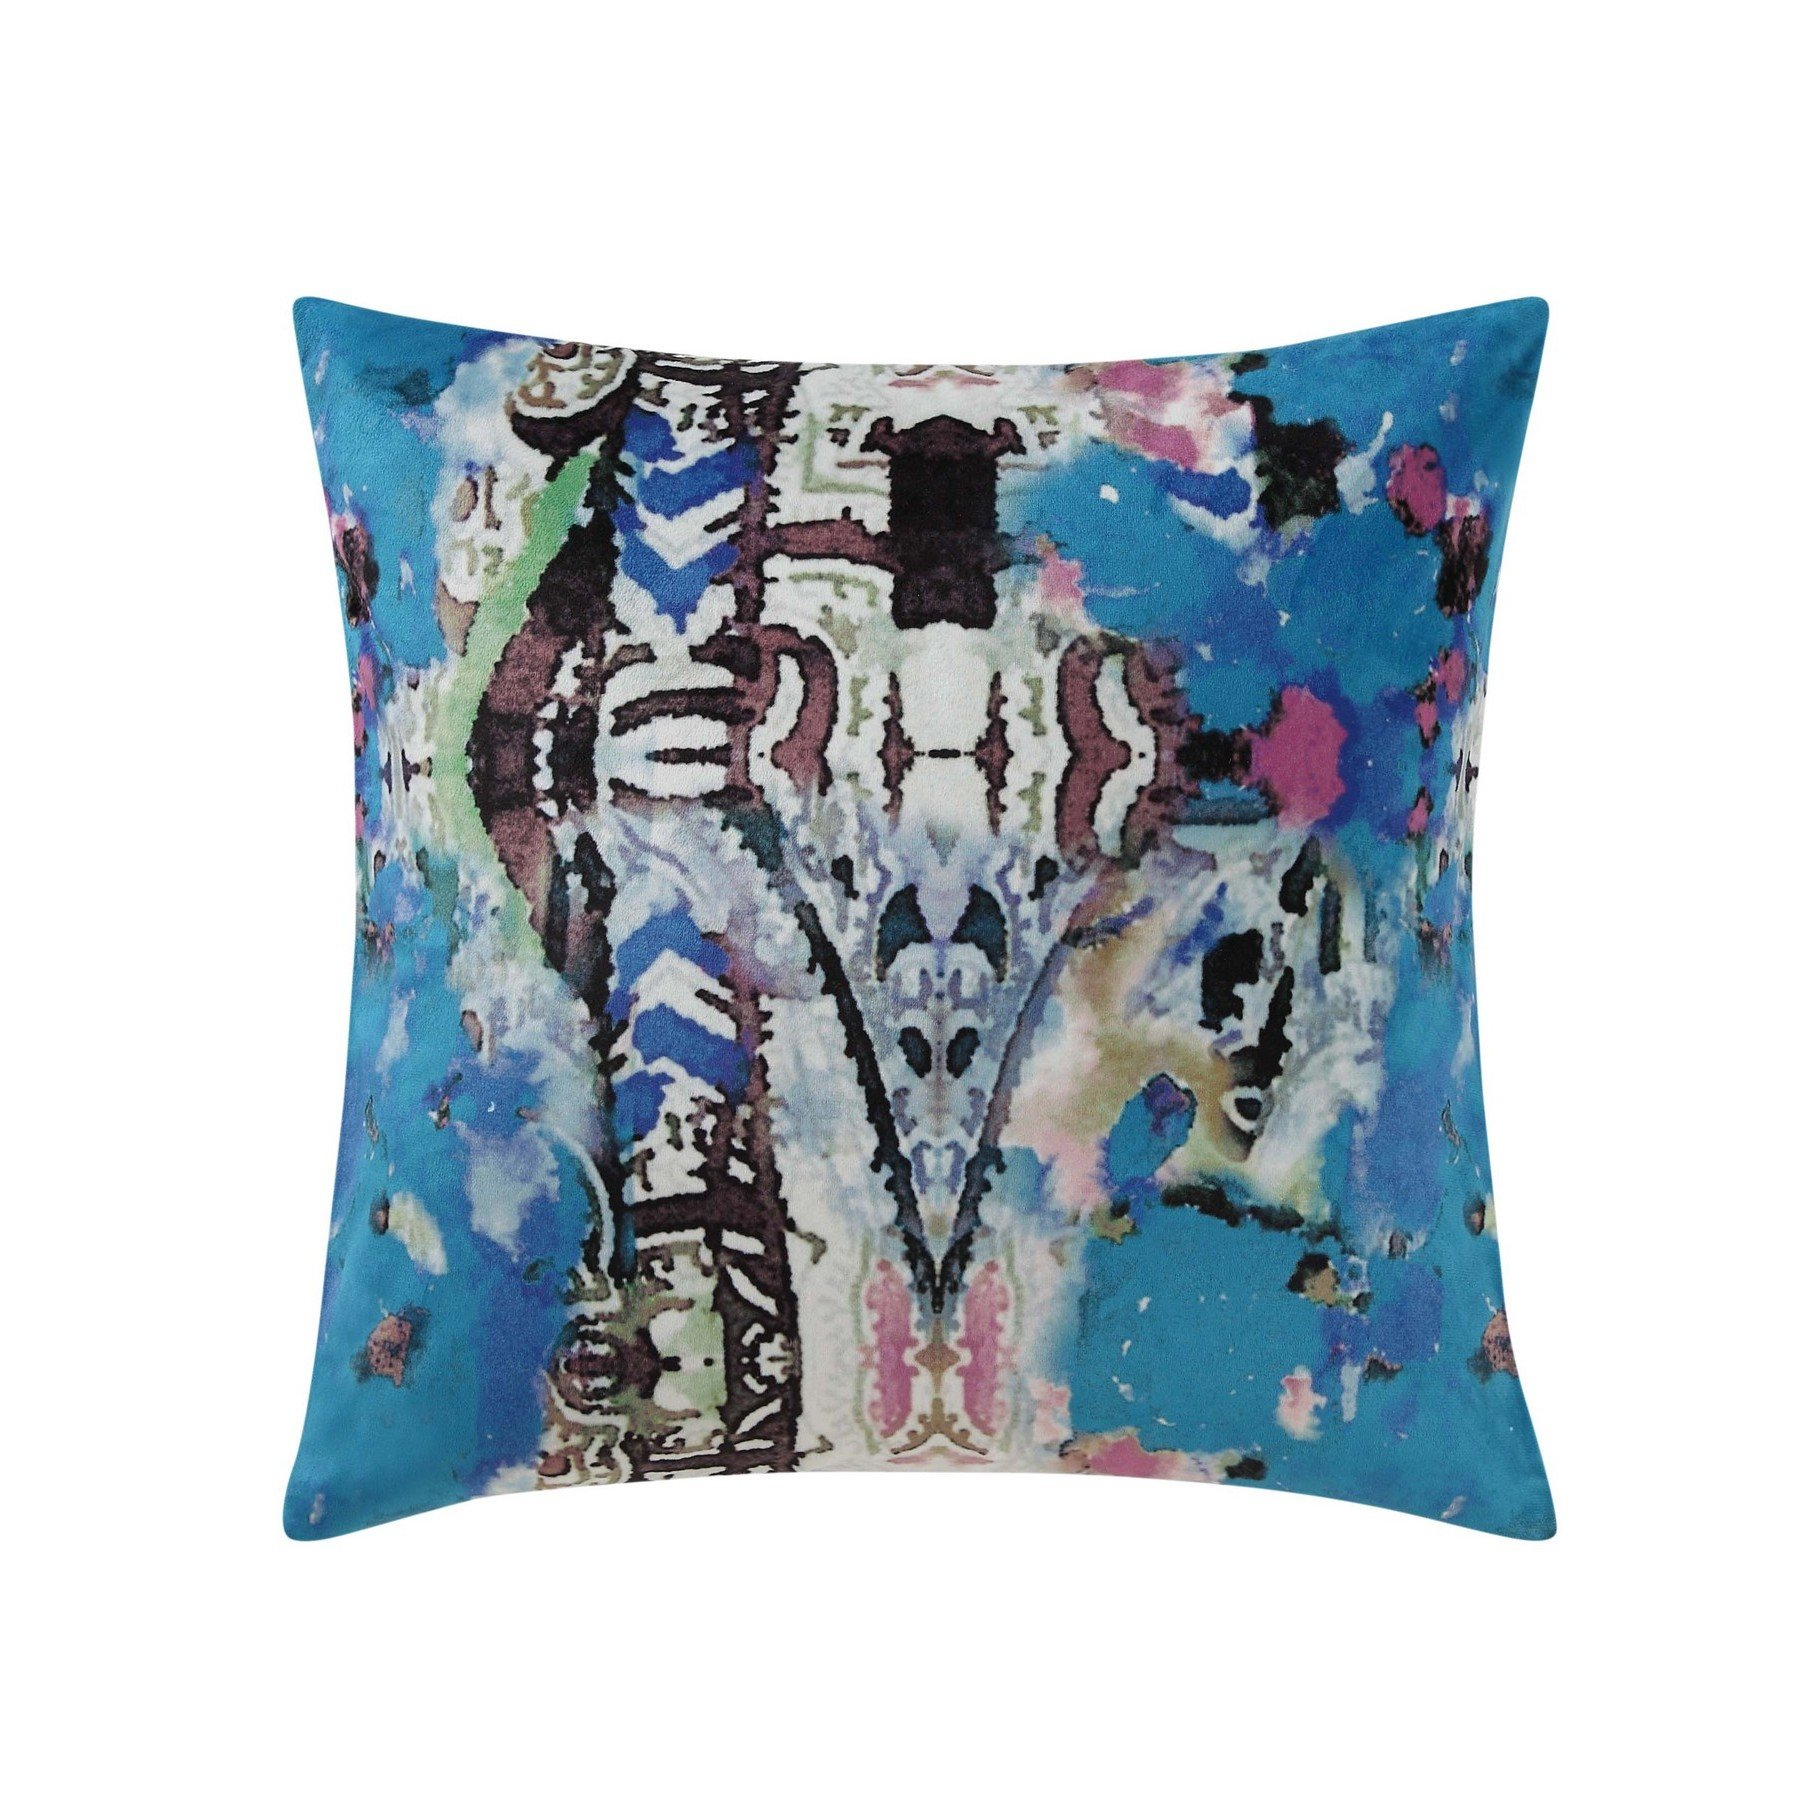 Poetic Wanderlust by Tracy Porter PQW2038DP1-1100 18 Square Printed Decorative Pillow, 18'' x 18'', Iris